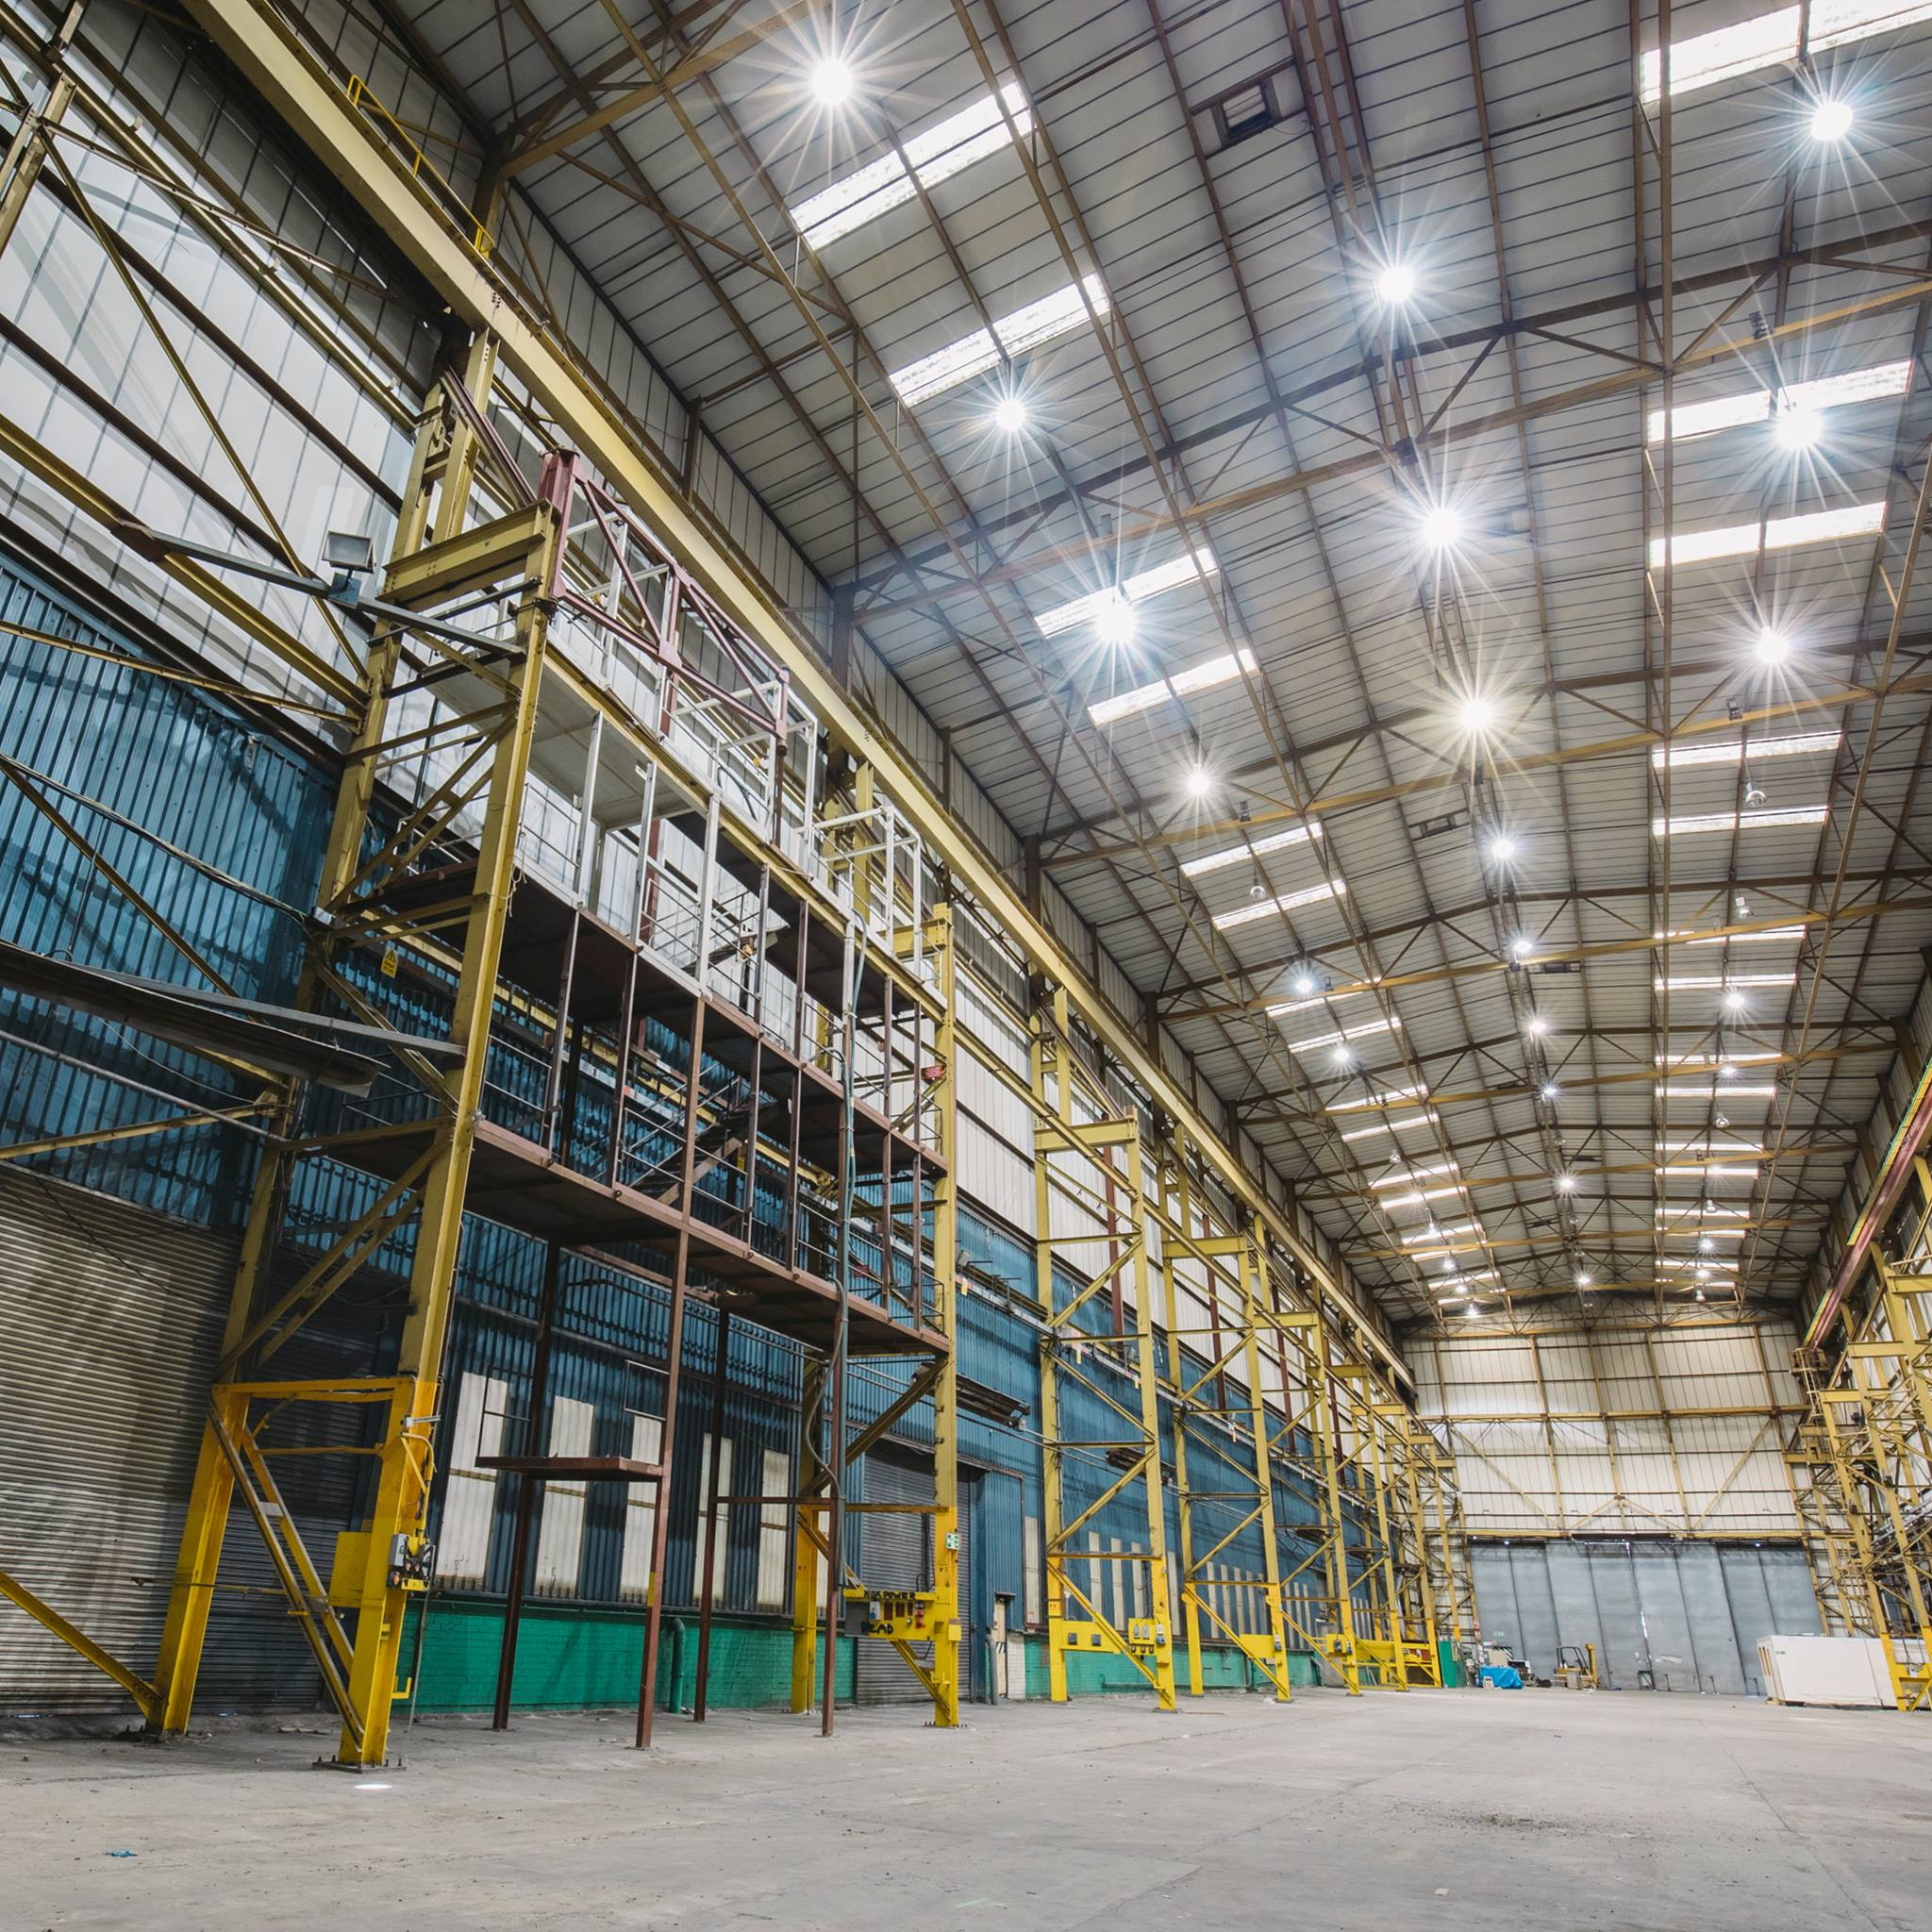 Our second stage and main indoor space will be the largest warehouse venue for m...